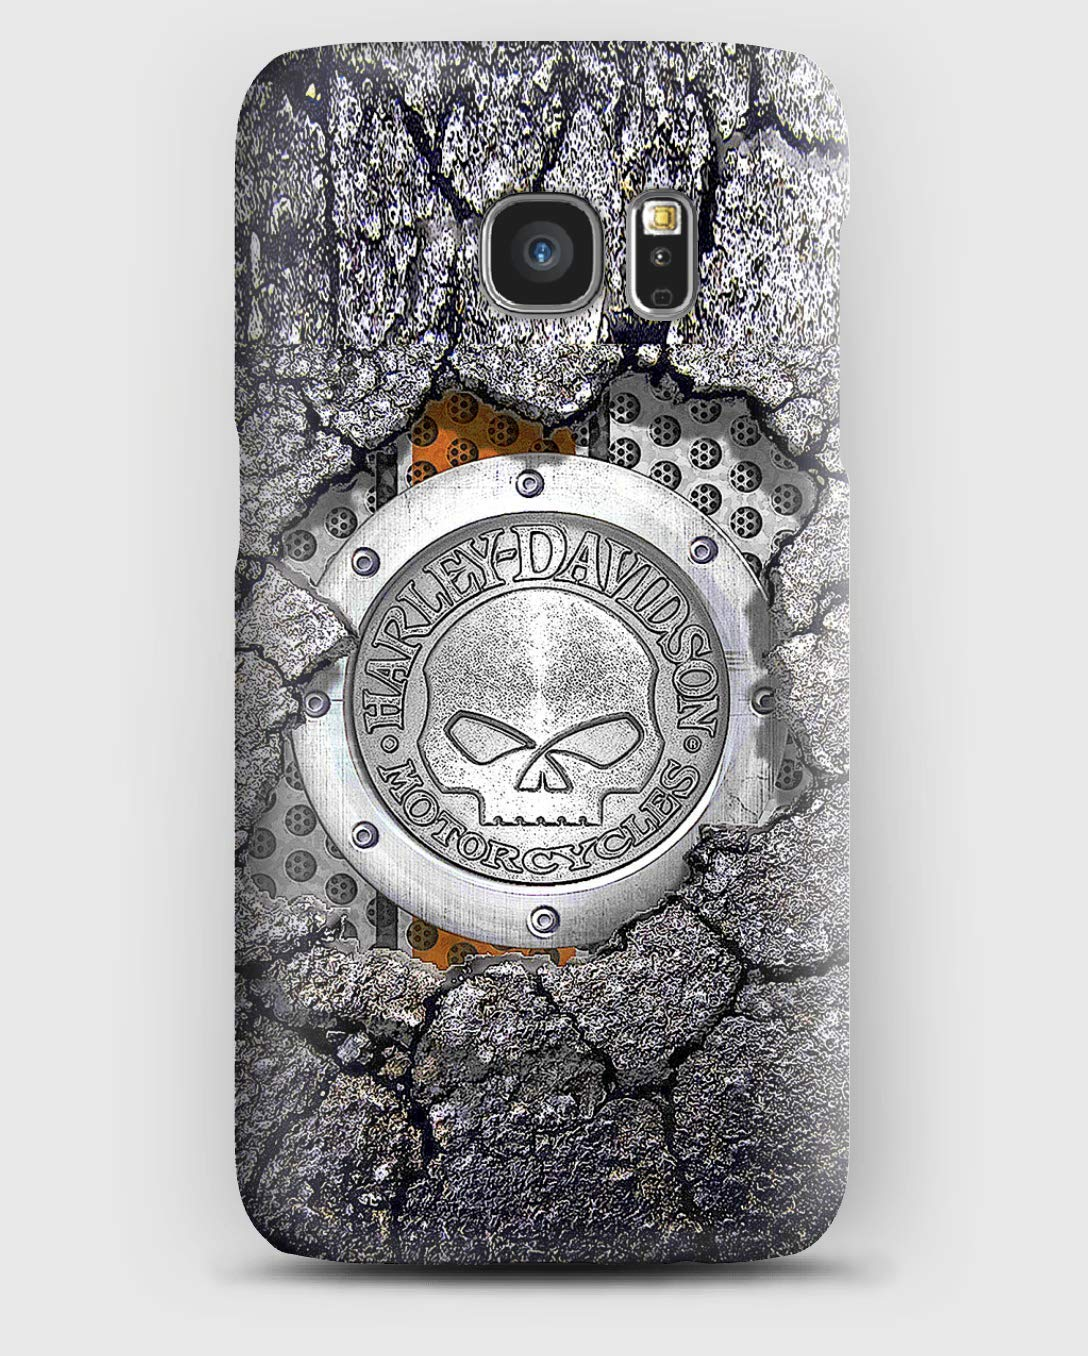 Harley-Davidson, Cover Samsung S5, S6, S7, S8, A3, A5, A8, J3,J5,